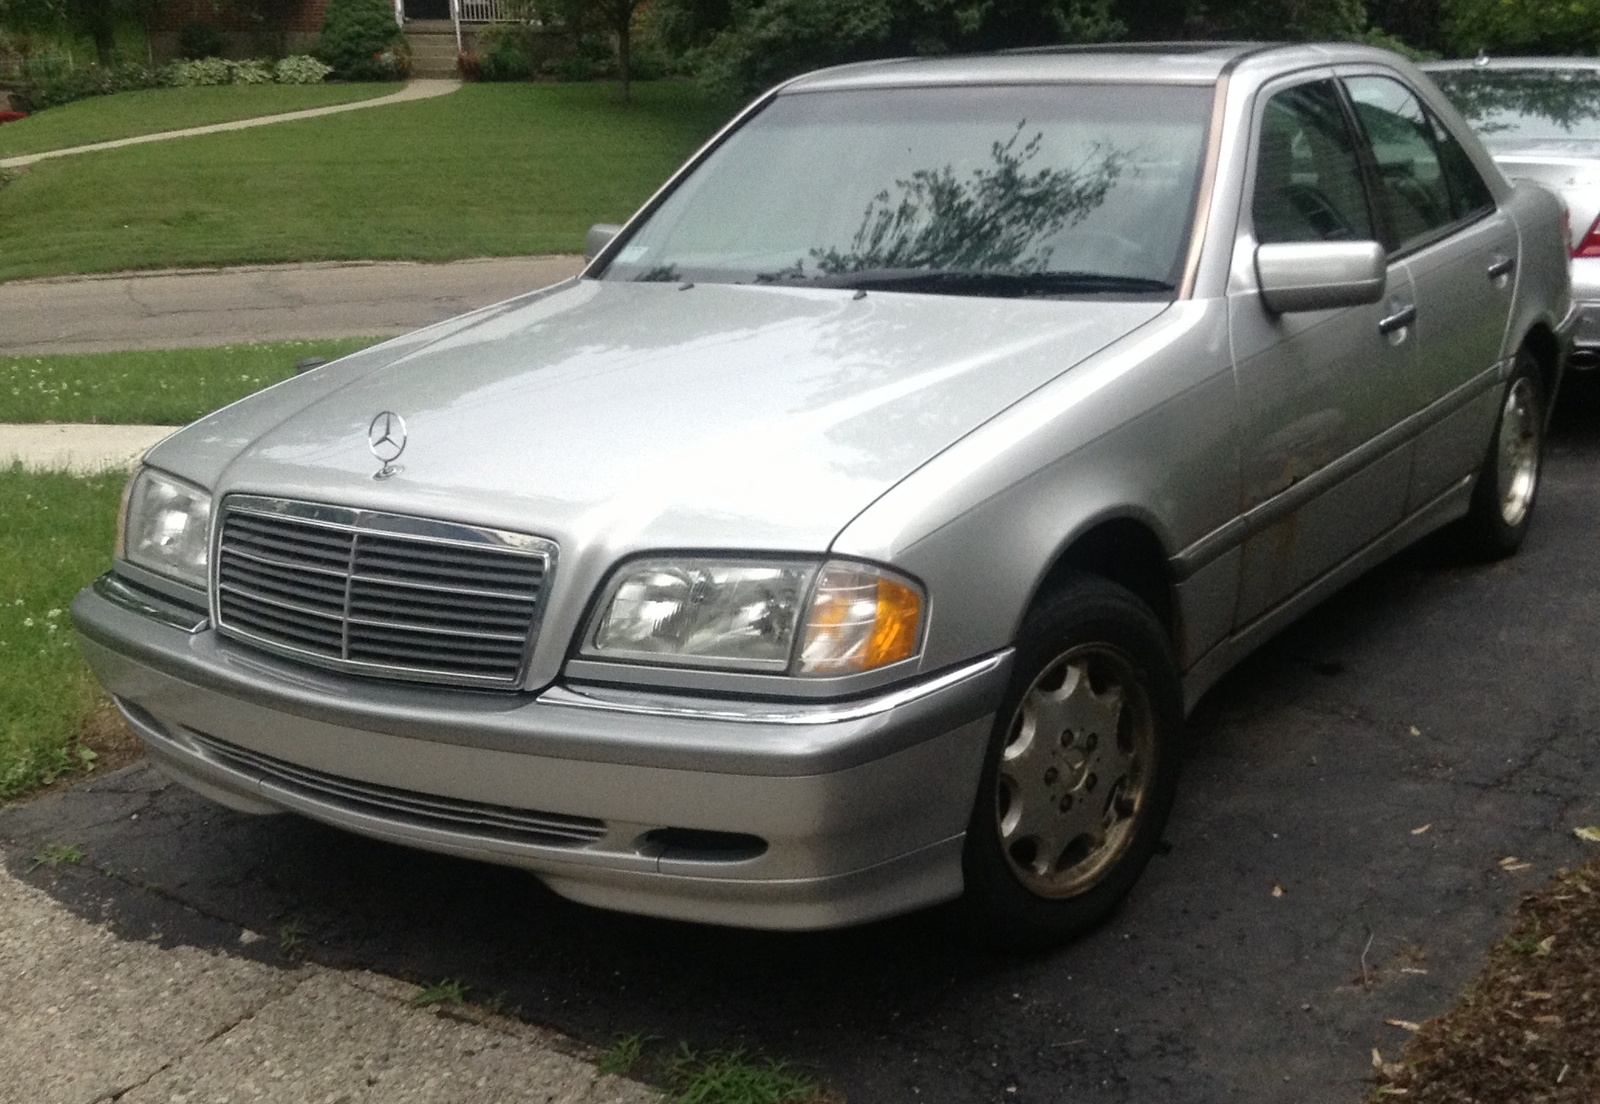 1999 mercedes benz c class pictures cargurus for 1999 mercedes benz e320 4matic